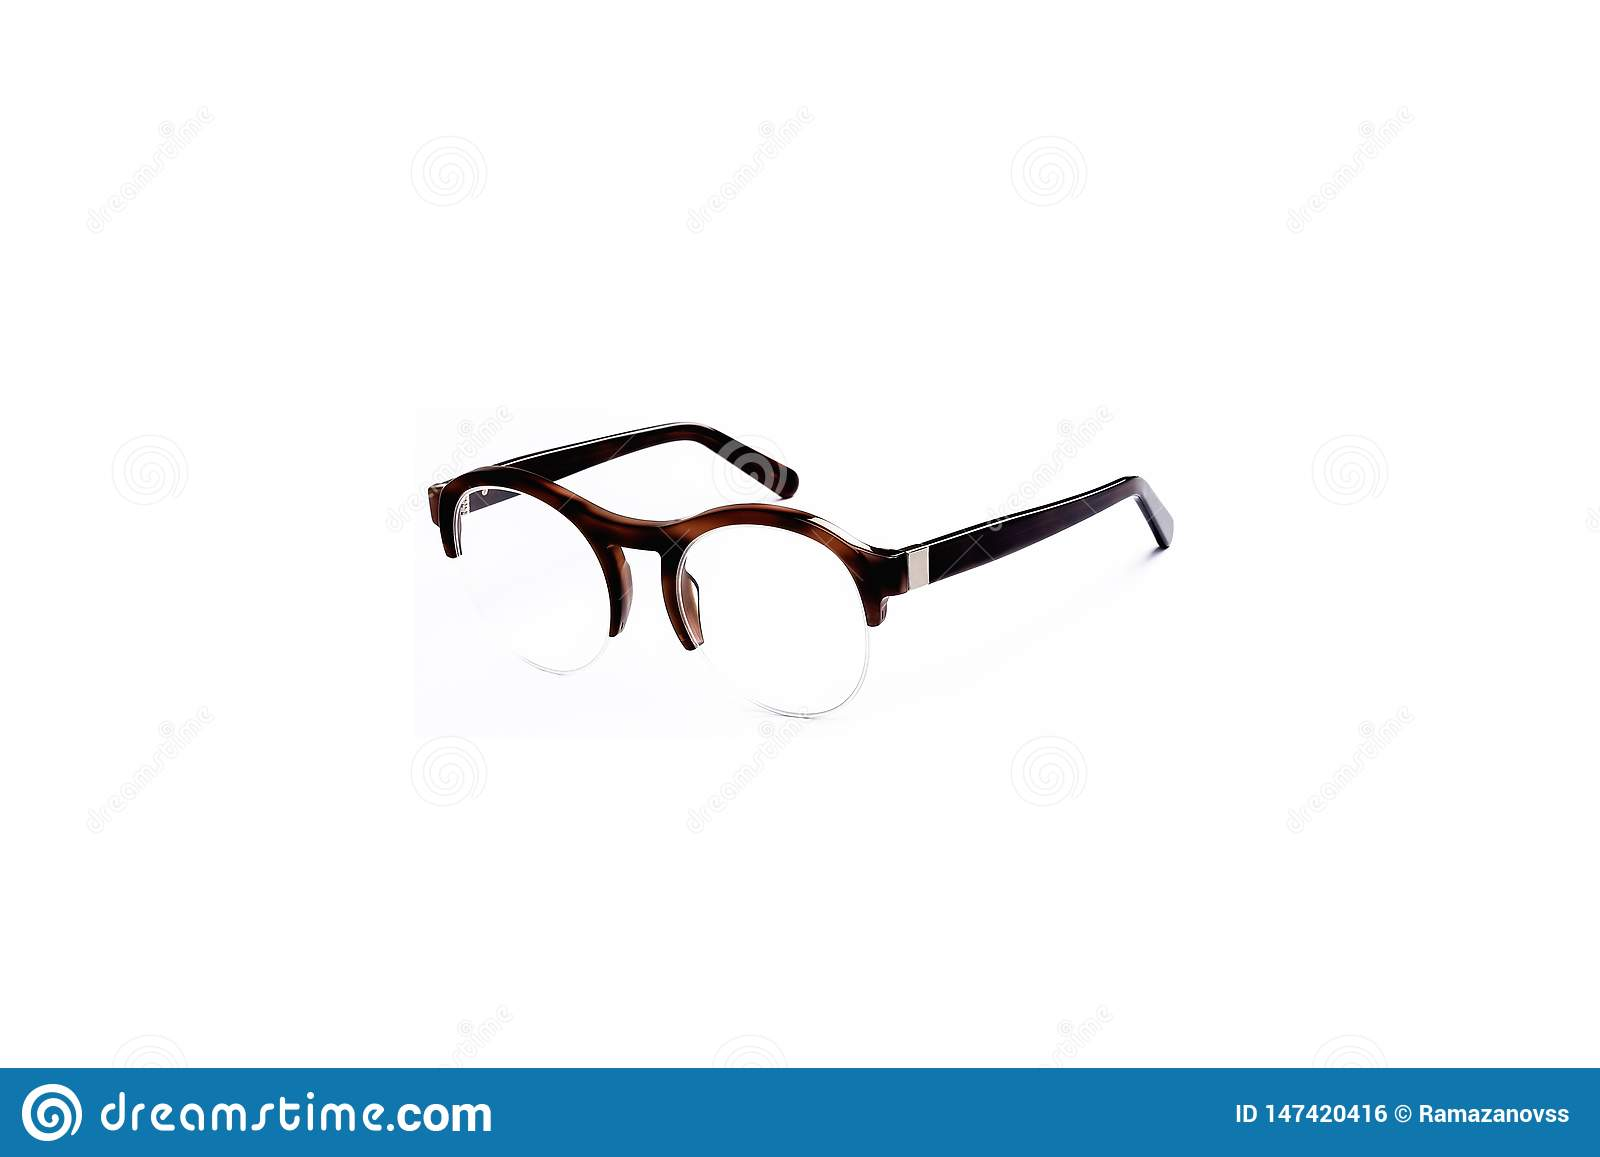 Glasses with transparent glasses in a fashionable frame on an isolated white background